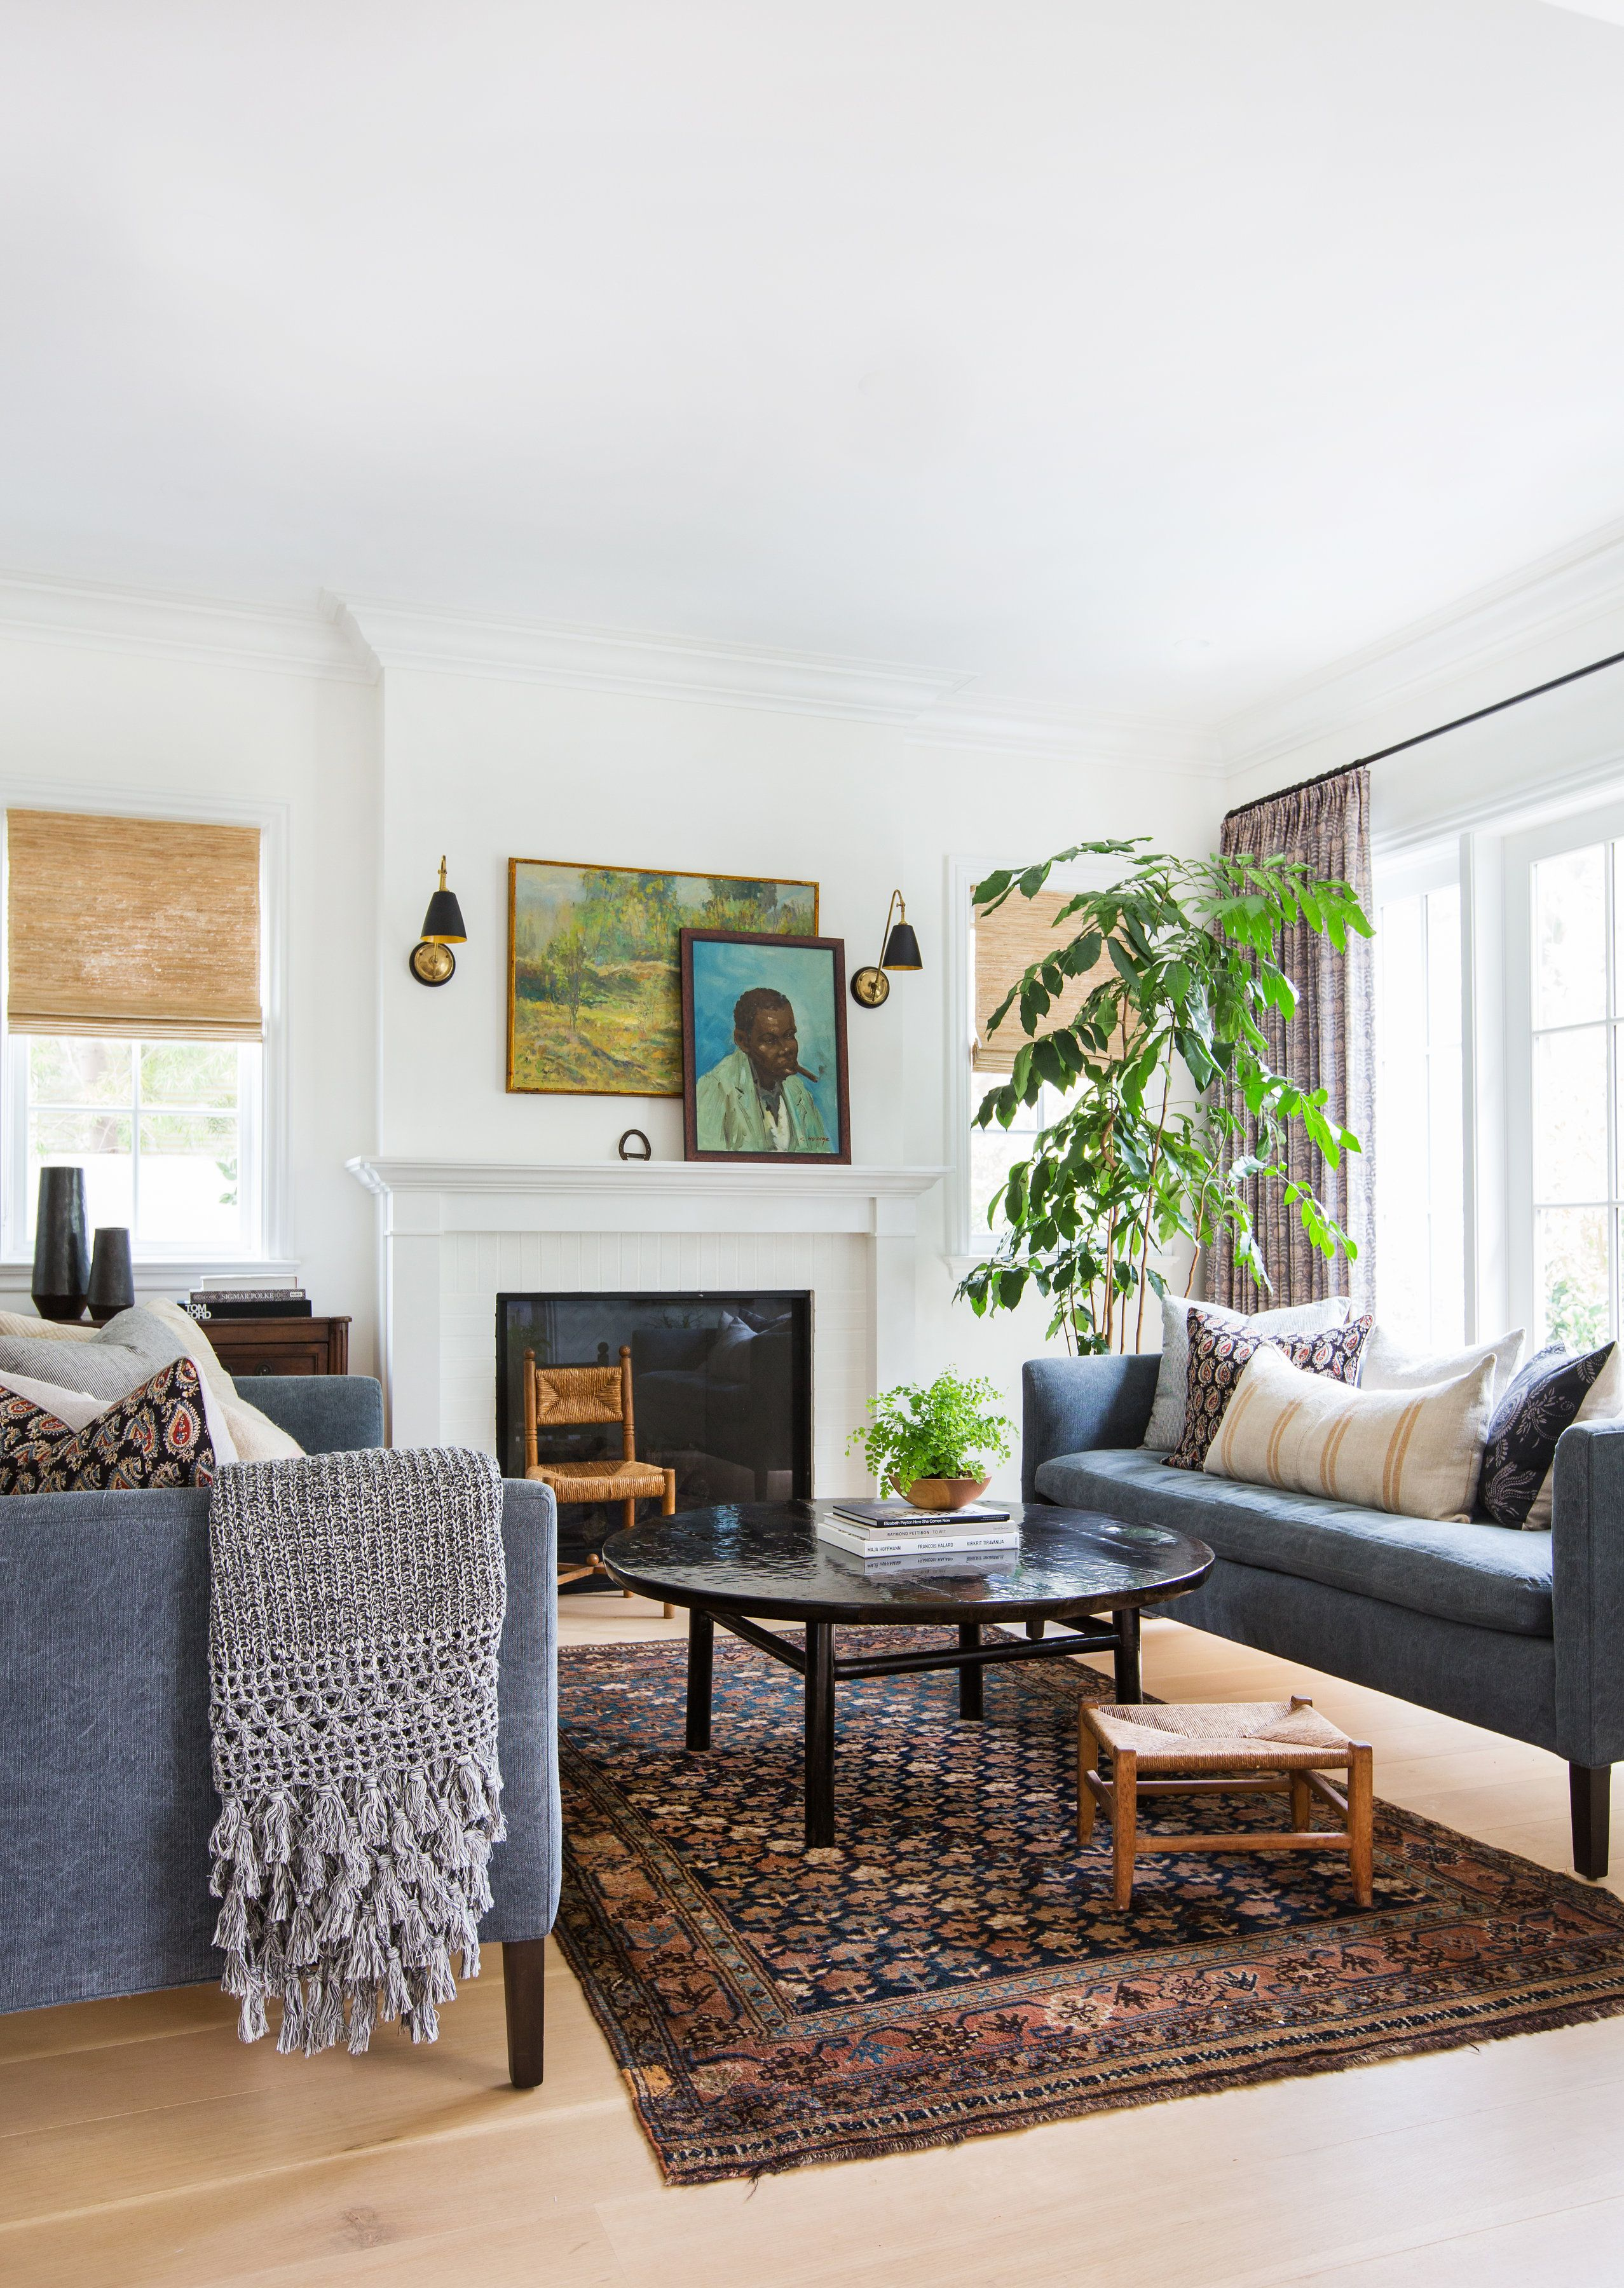 12 Non-Working Fireplace Decor Ideas in 2018 - What To Do With A Non ...